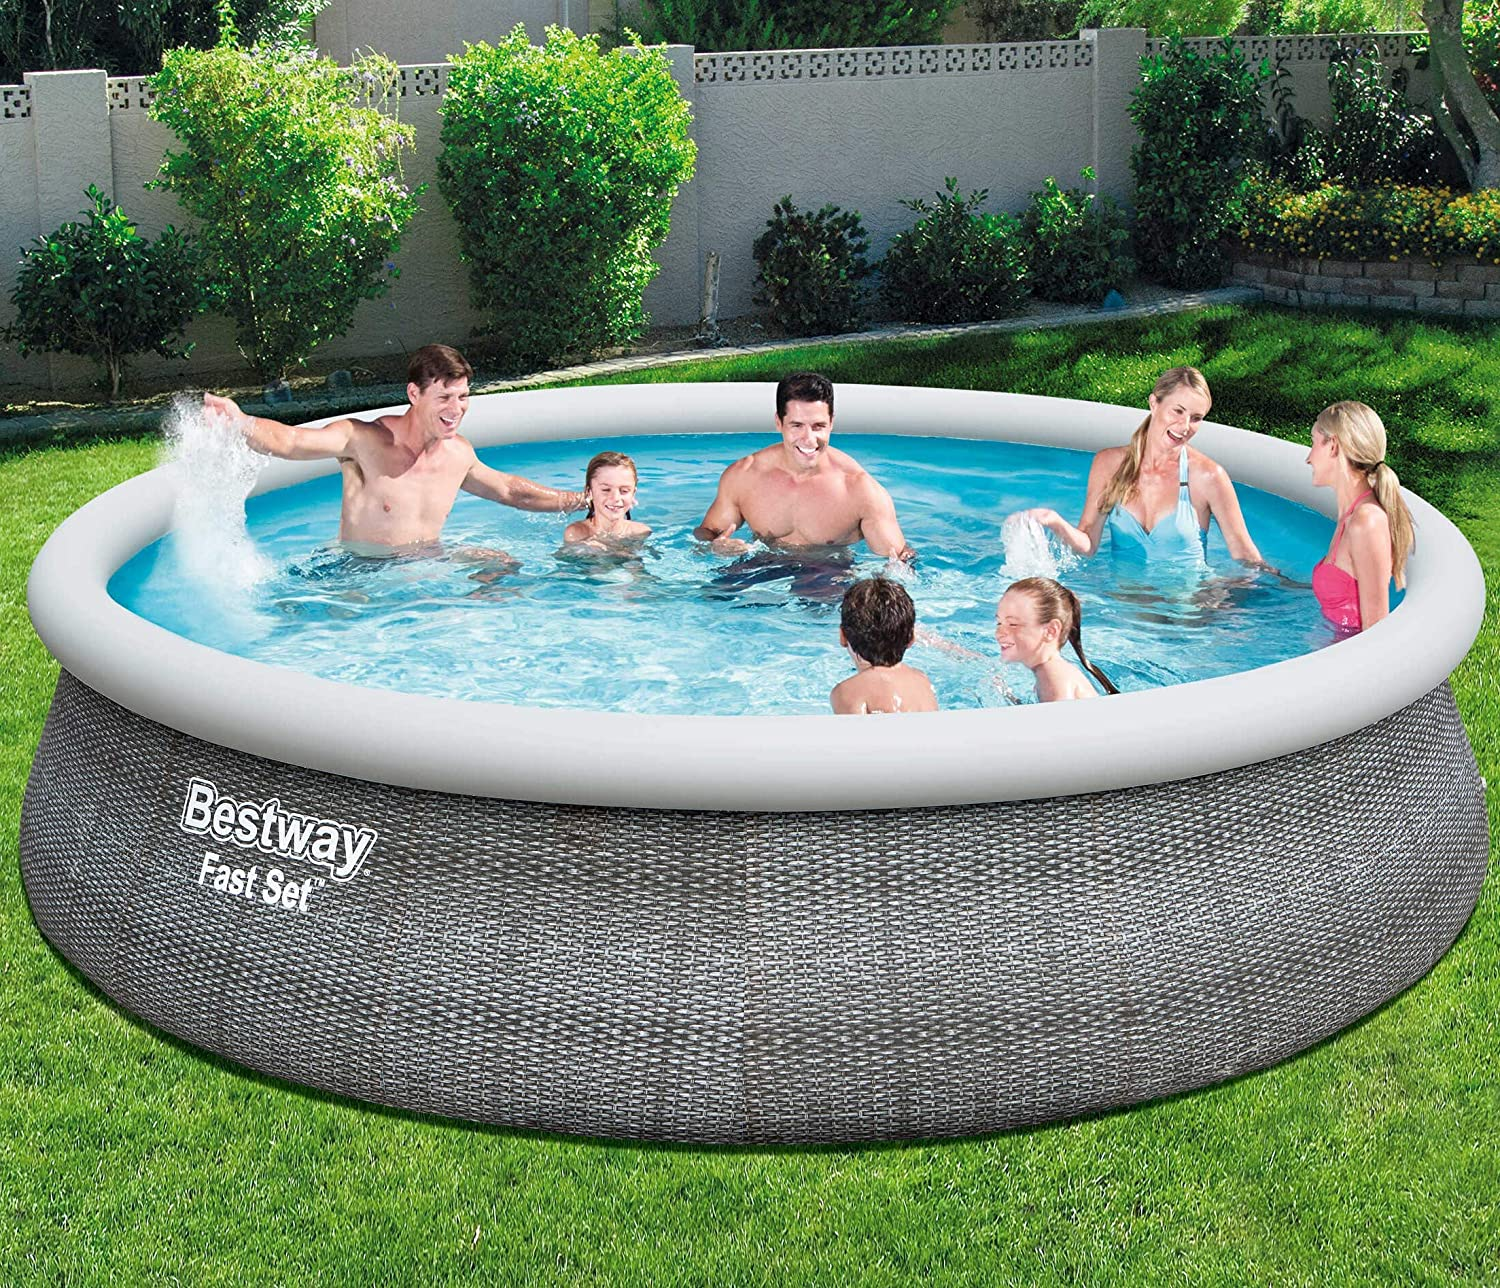 Bestway Fast Set - Piscina inflable, 4.5 x 1.07m: Amazon.es: Jardín